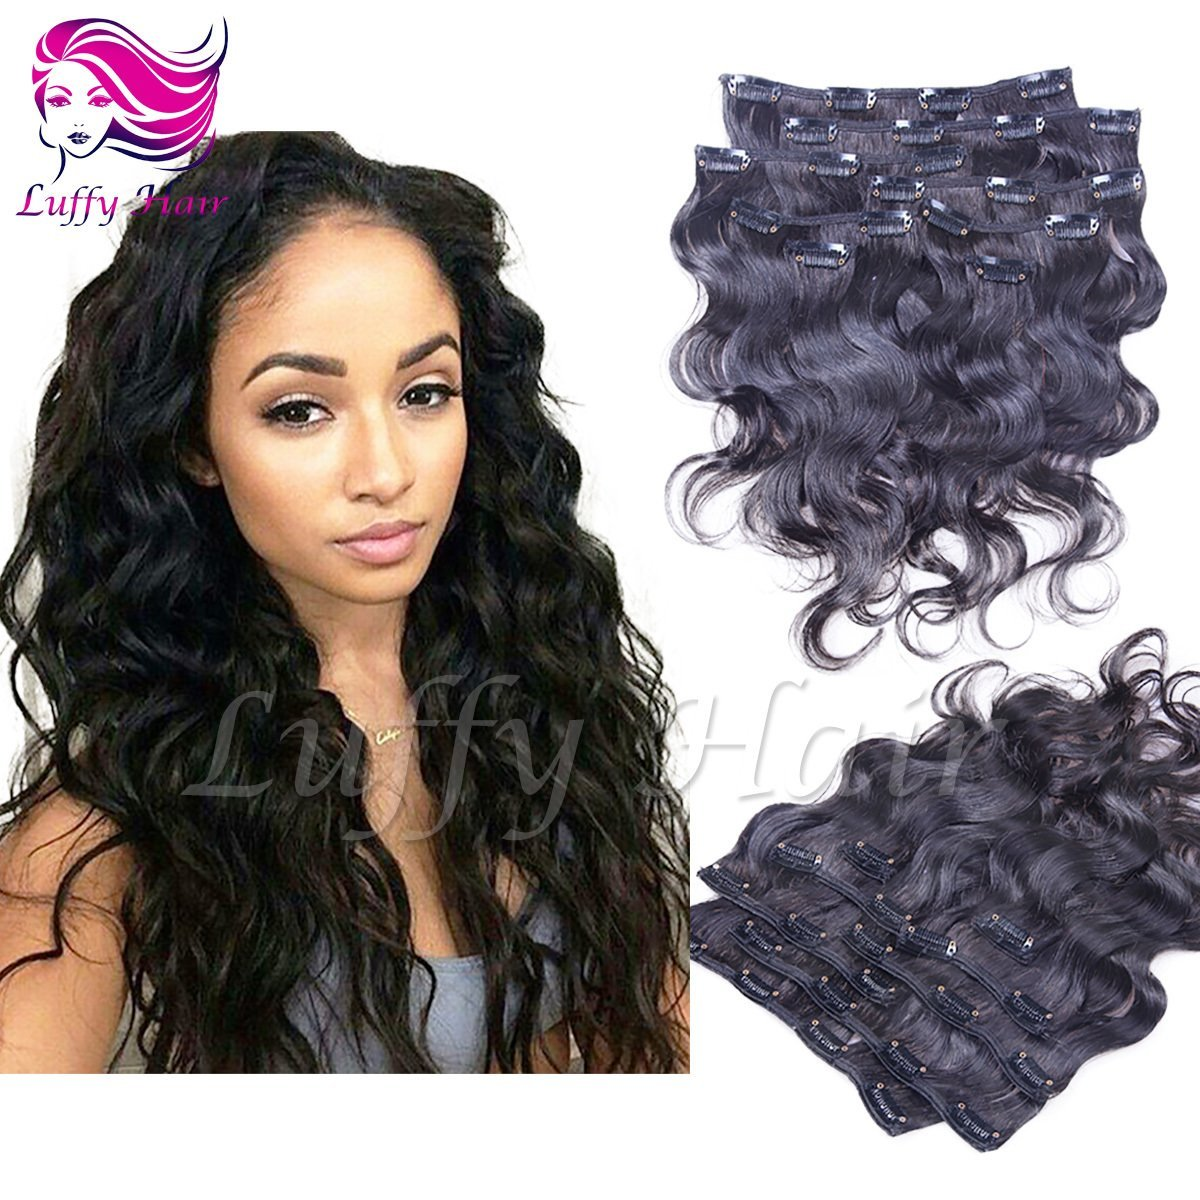 8A Virgin Human Hair Body Wave Clip In Hair Extensions - KIL005